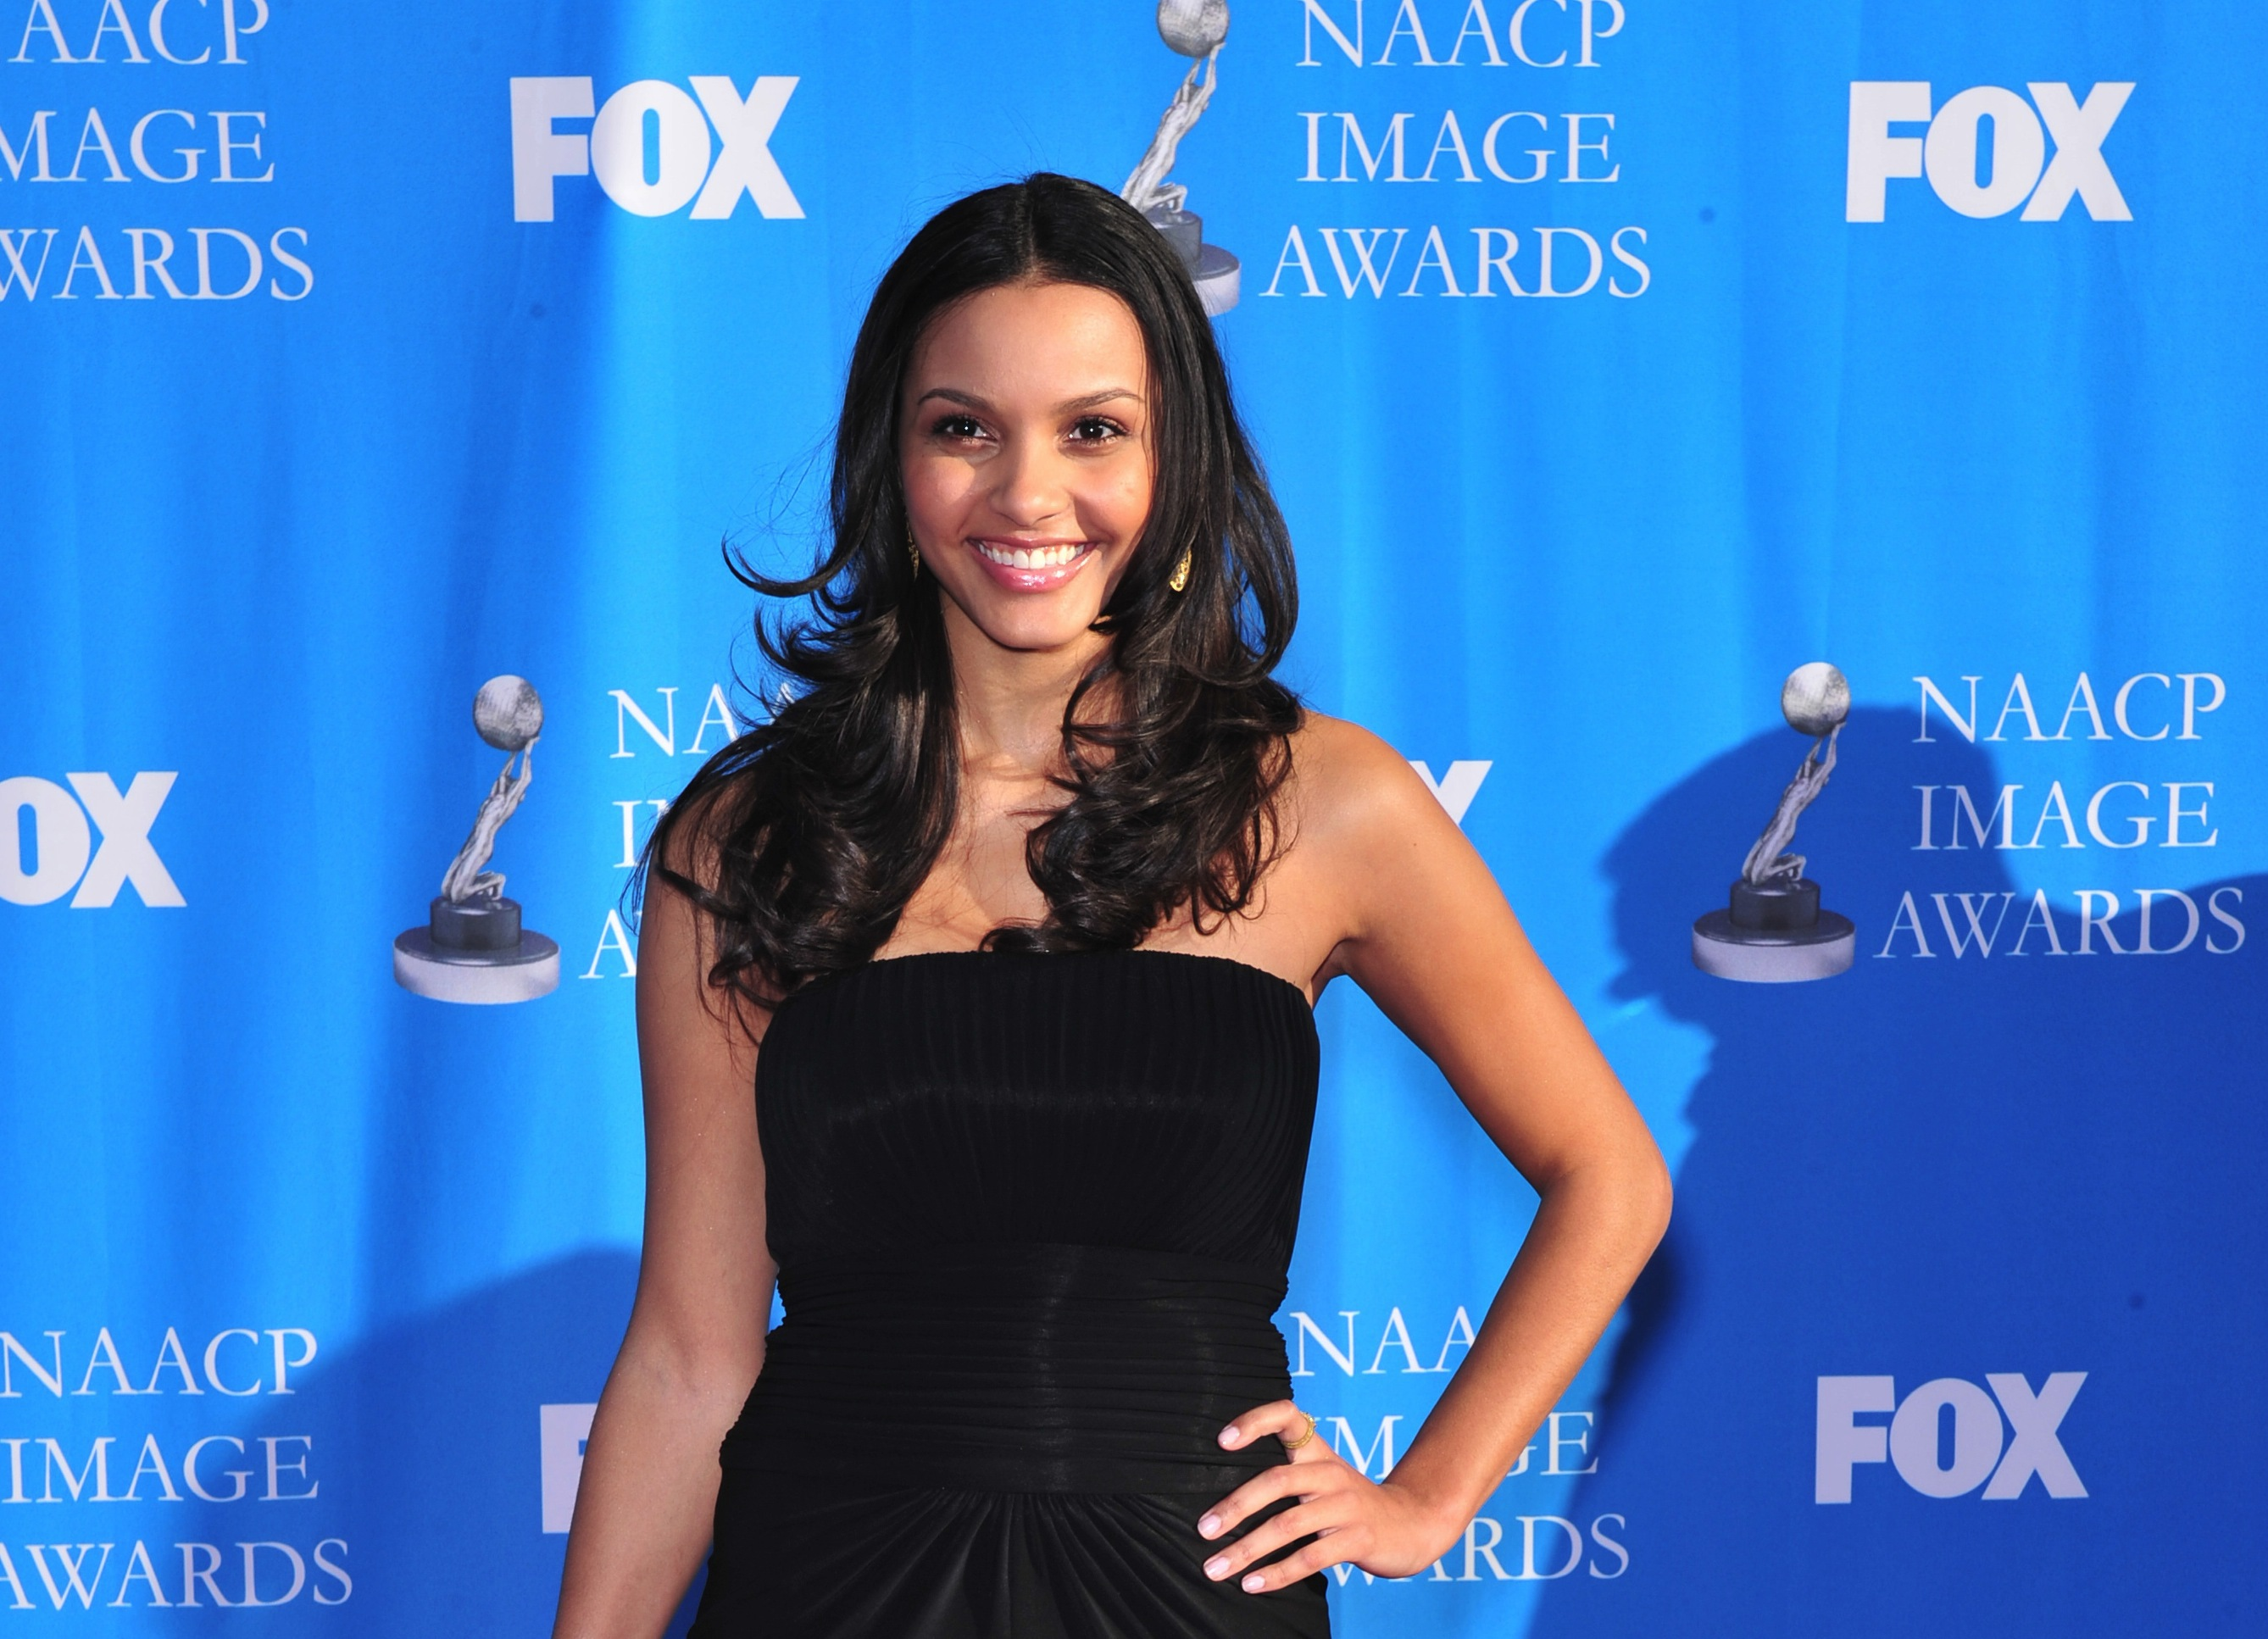 Jessica Lucas Wallpaper